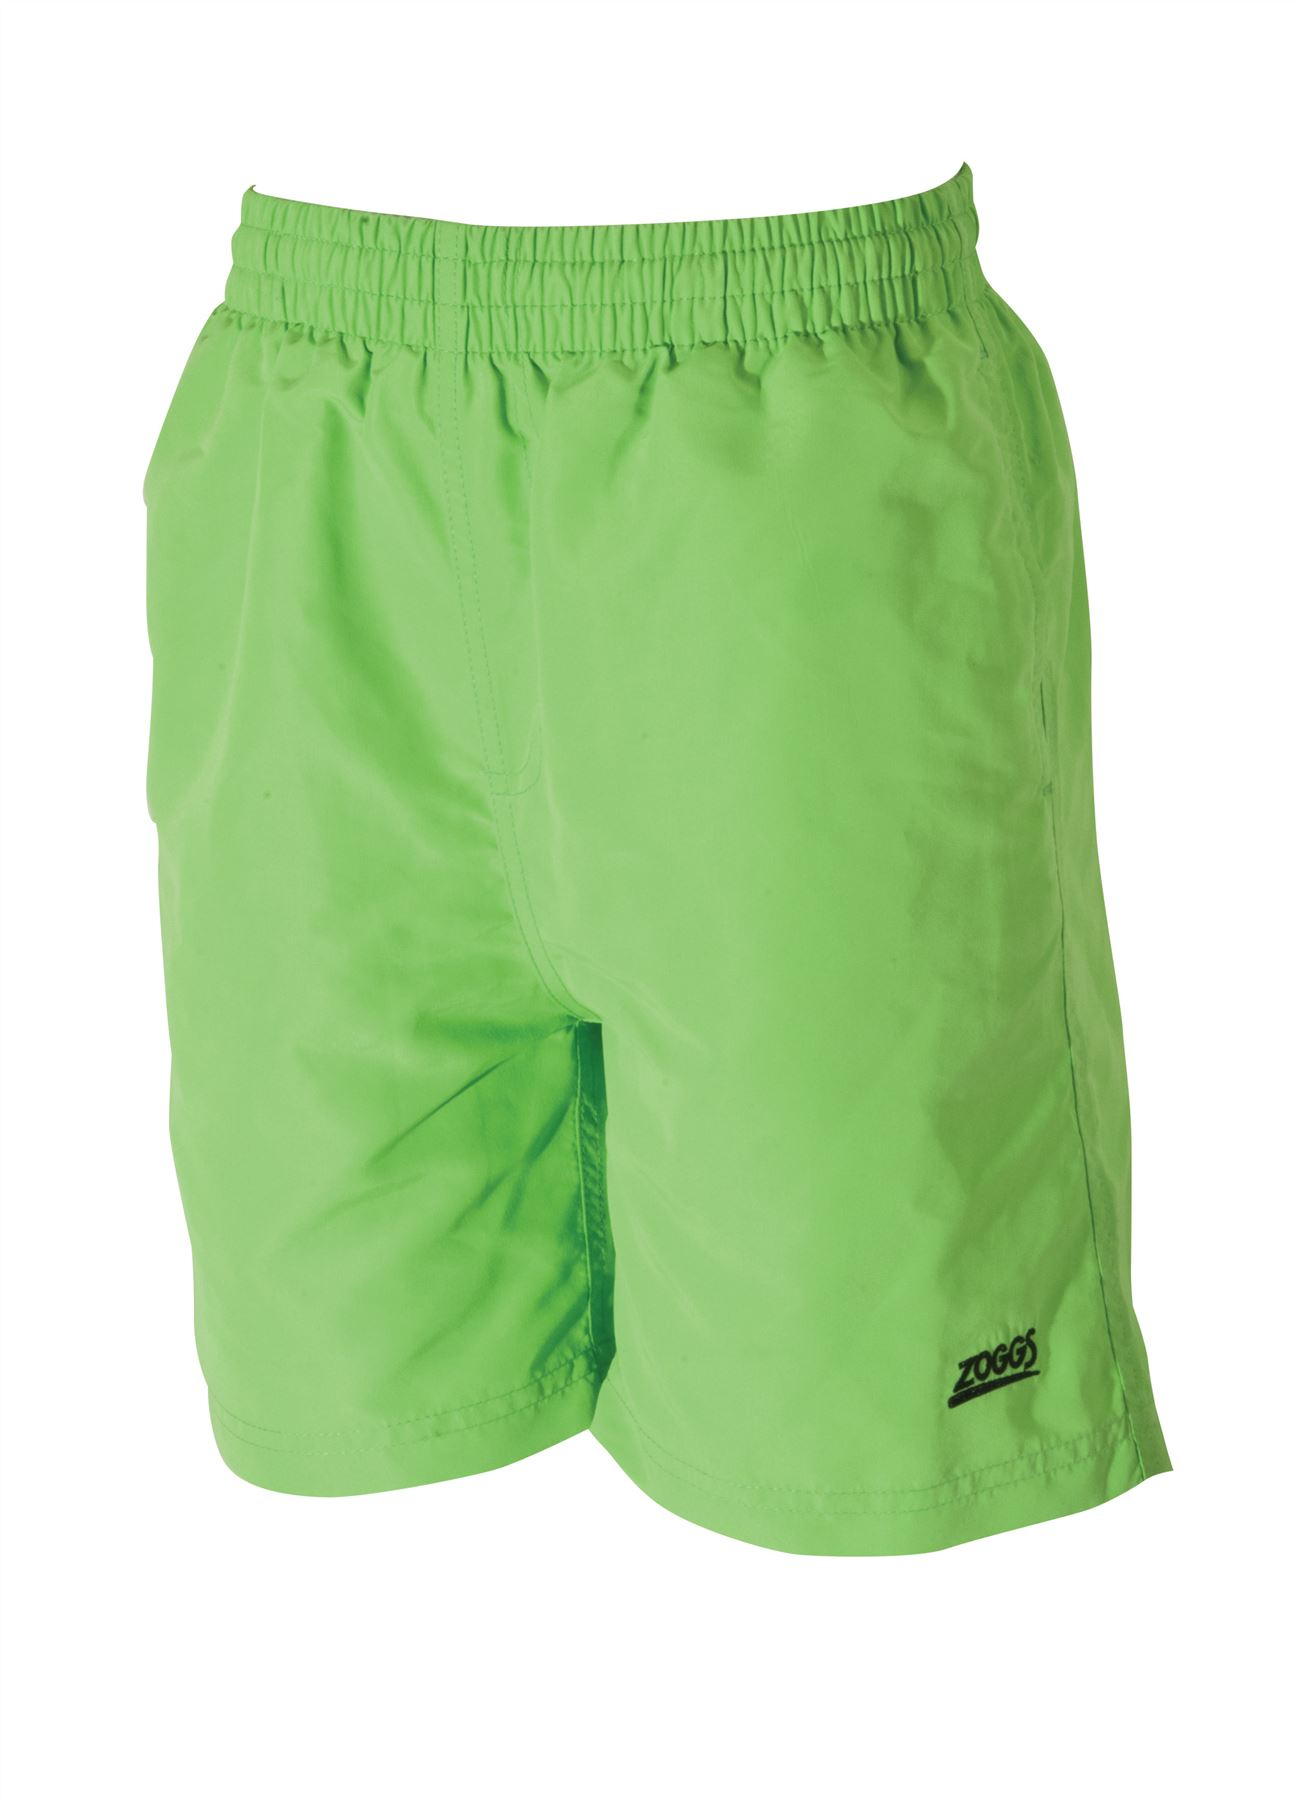 These kids swim shorts feature a knee-length cut and an enclosed elastic waist. Kids Swim Shorts UPF 50+: Sun Protective Clothing - Coolibar JavaScript seems to be disabled in your browser/5(16).